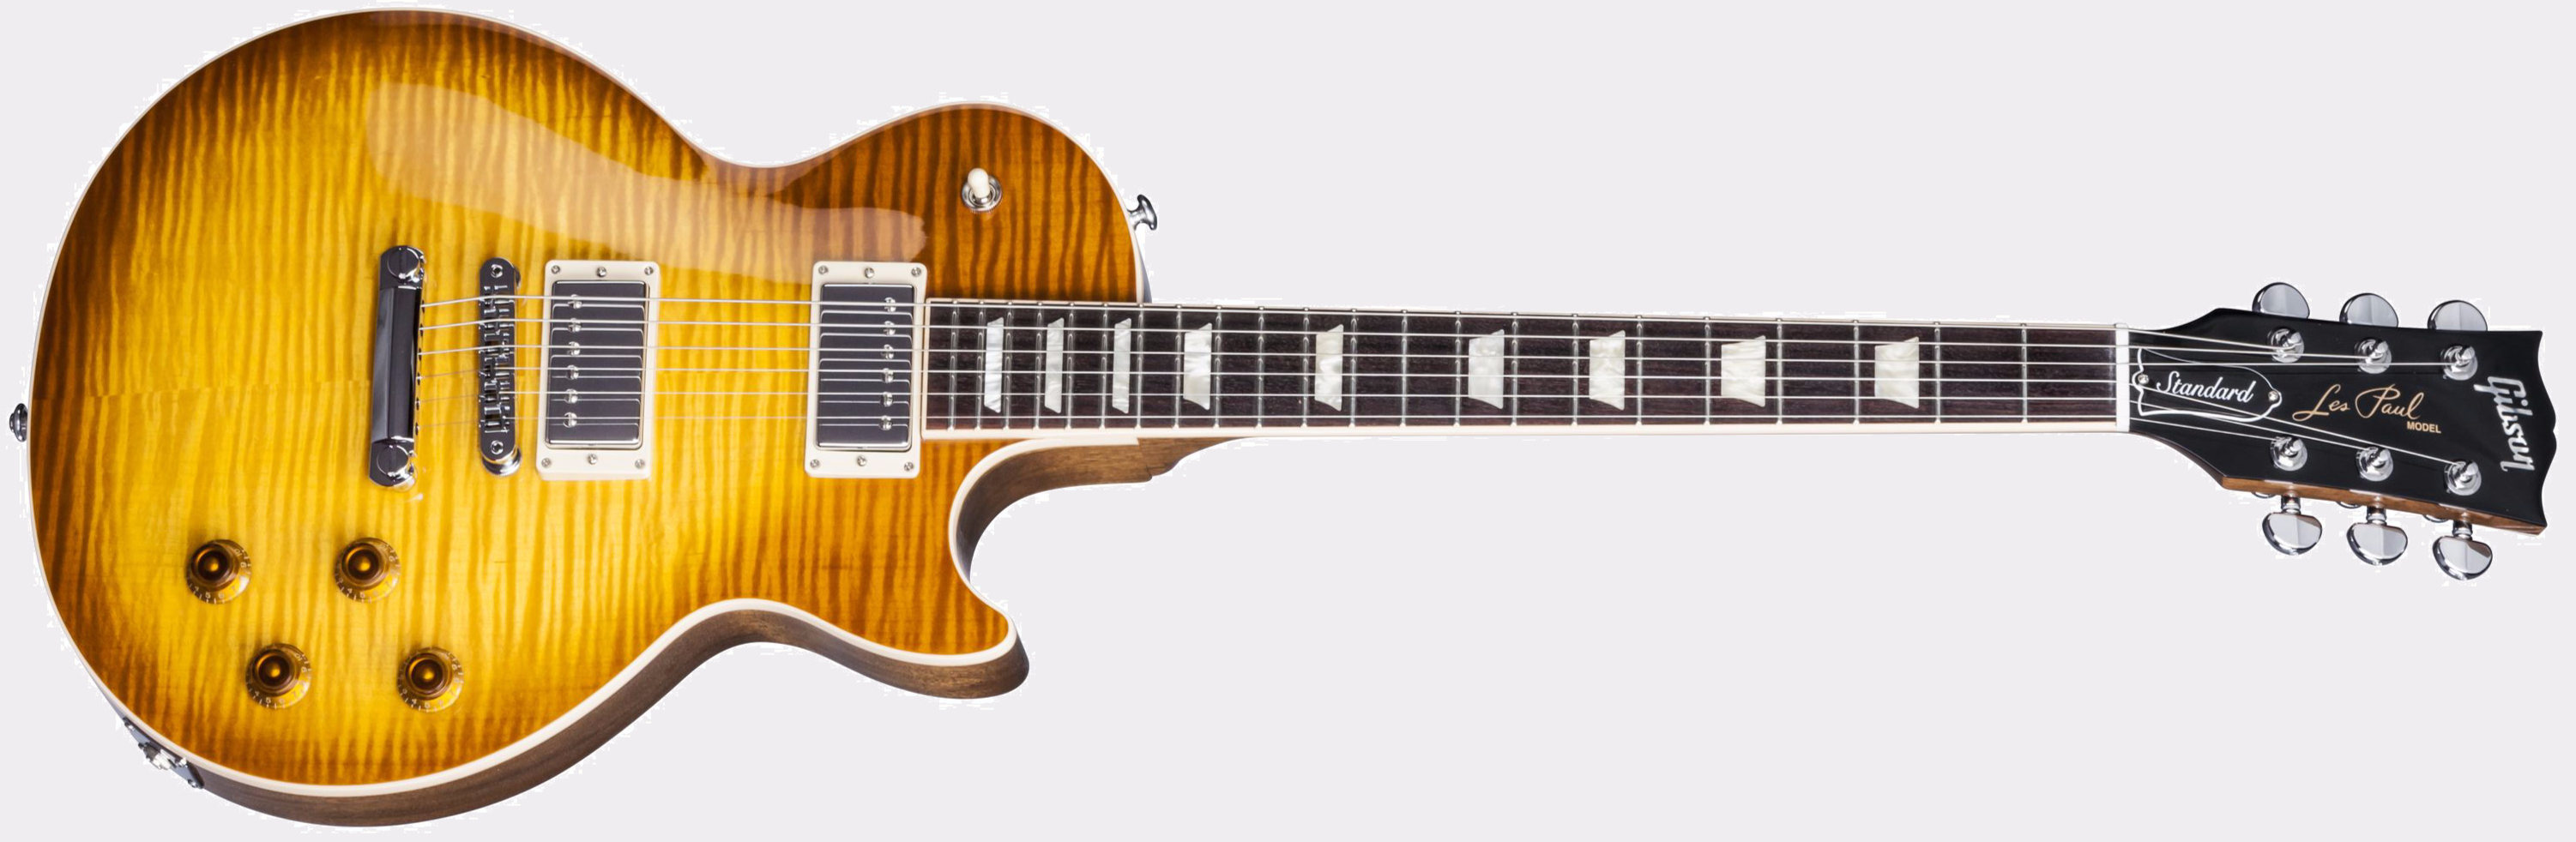 Gibson Les Paul Standard 2017 T HB Front